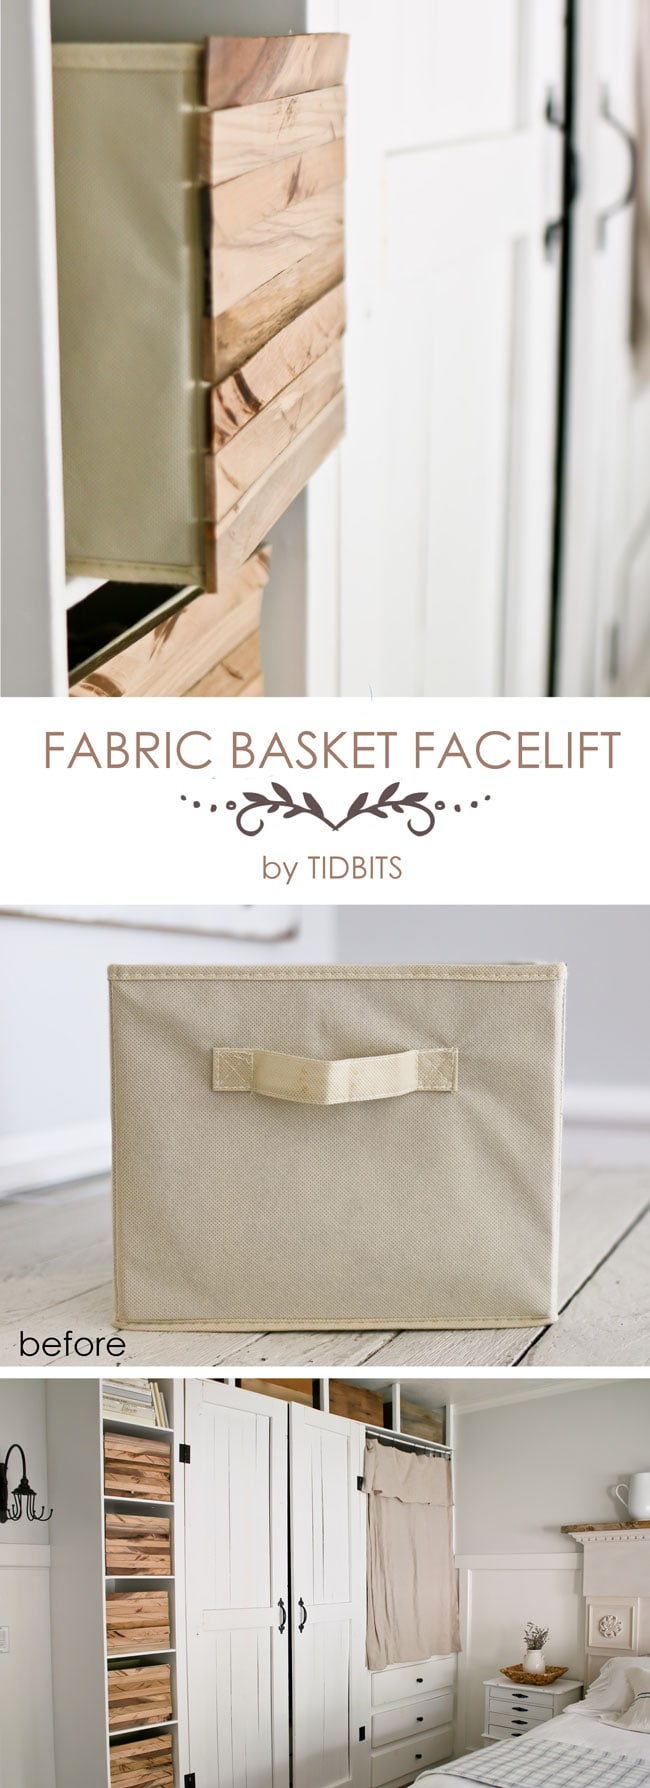 Fabric Basket Facelift! Take a plain, inexpensive fabric basket and liven it up with lovely wood pieces for one-of-a-kind storage. Tutorial available.